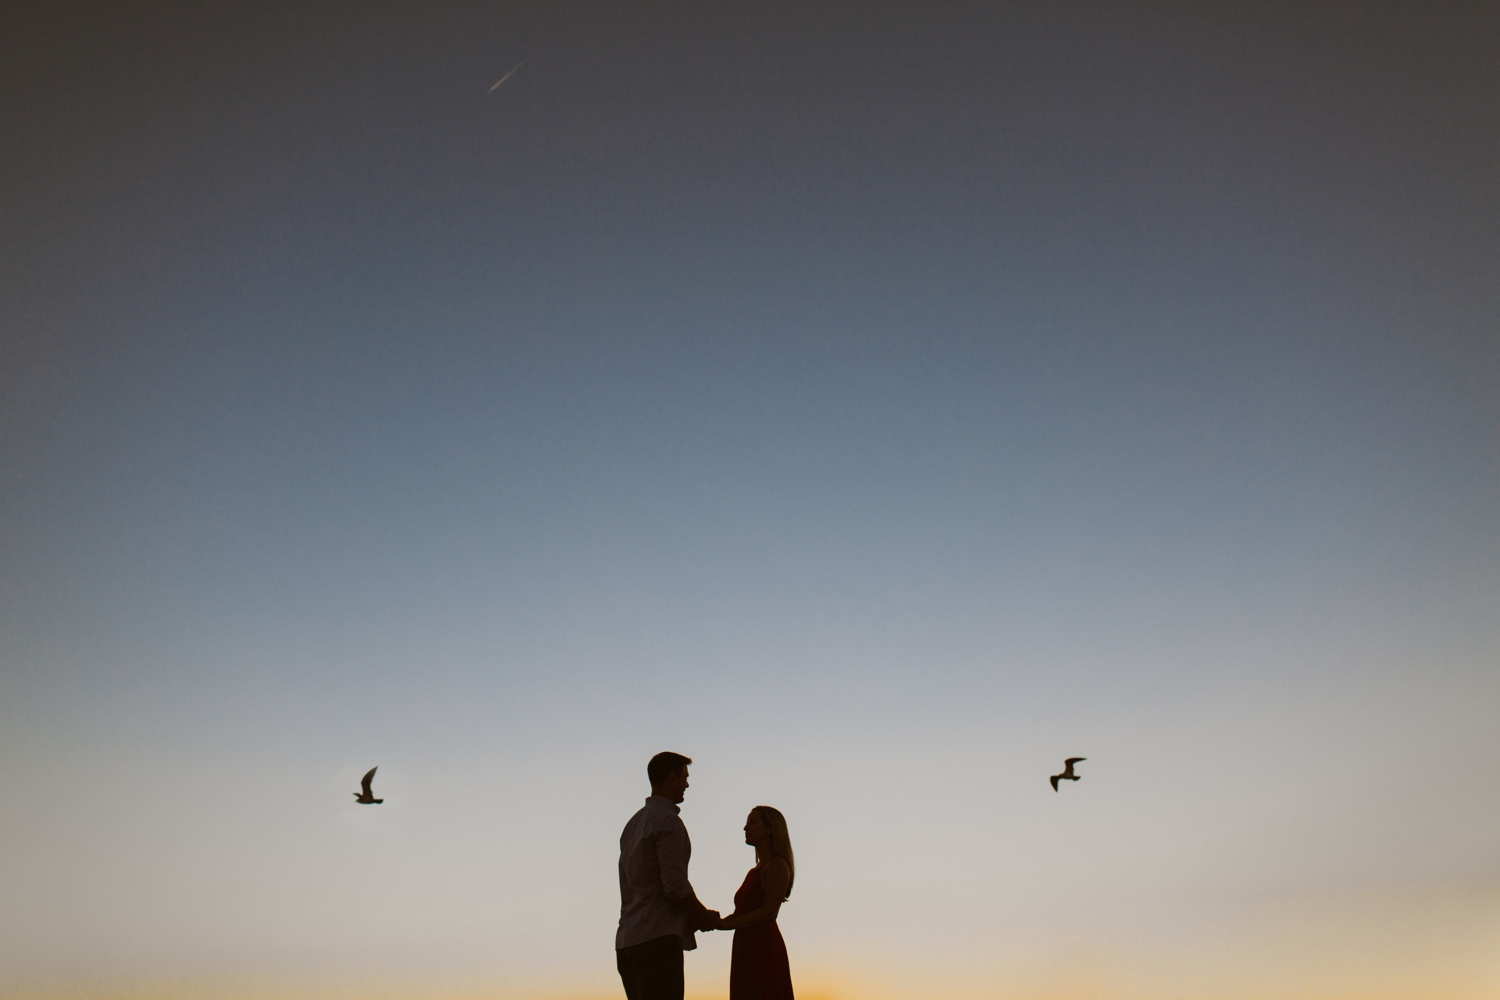 baltimore-maryland-forest-sunset-engagement-session-red-dress-annapolis-kate-ann-photography-photo_0108